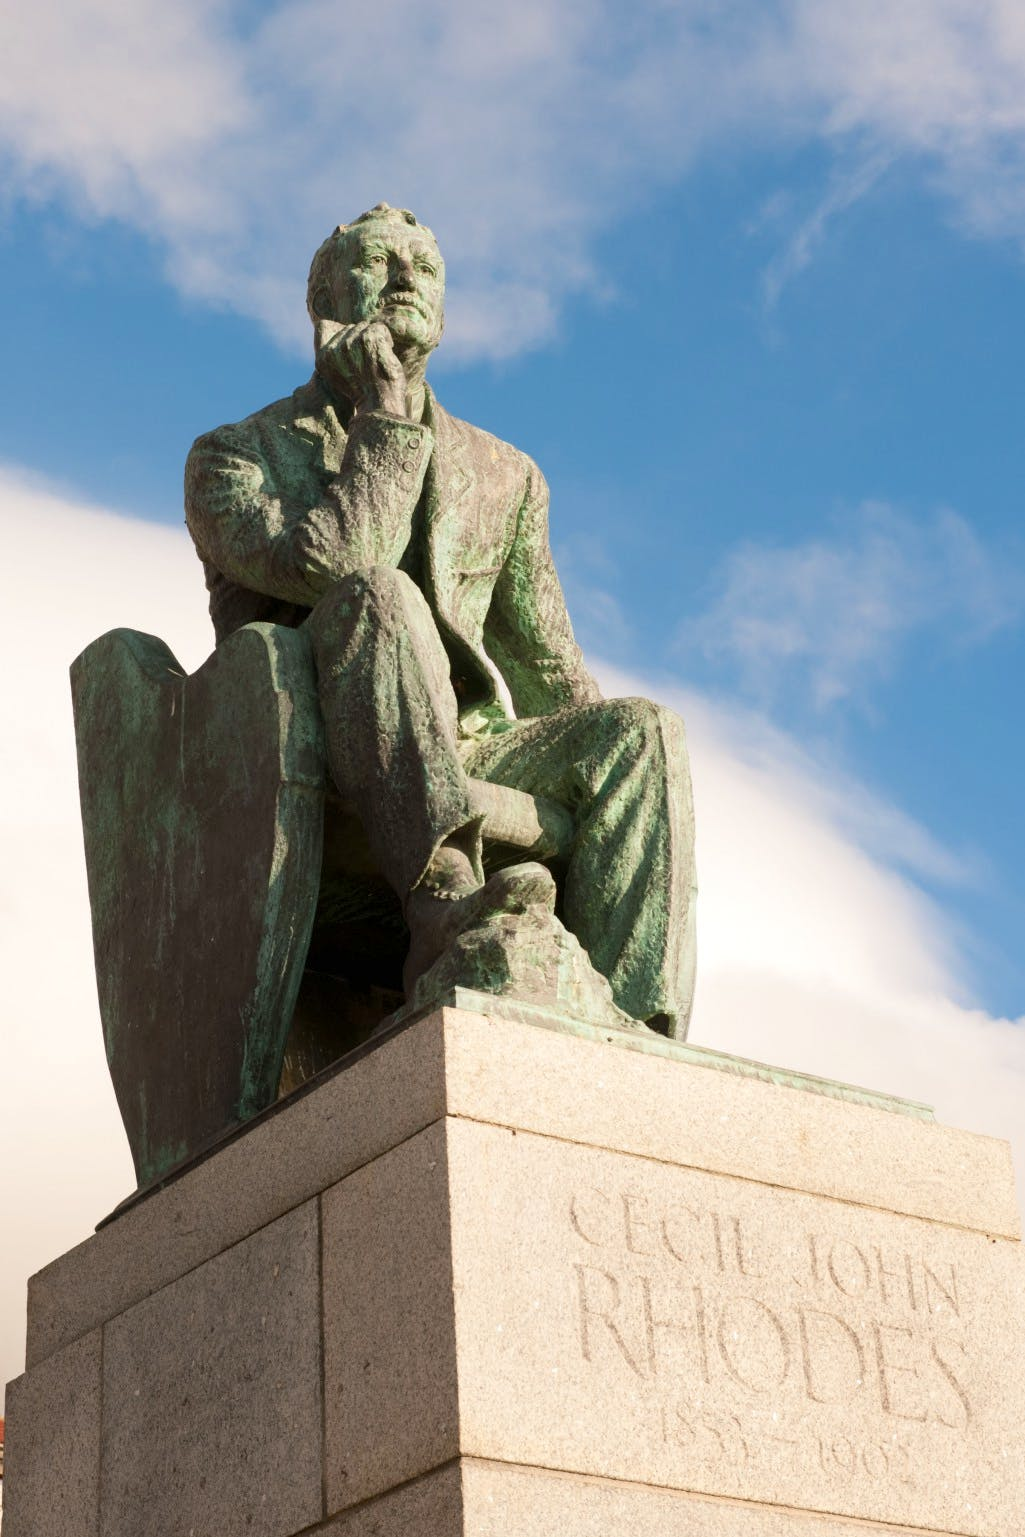 Statue of Cecil Rhodes at the University of Cape Town, erected in 1934 and removed in 2015